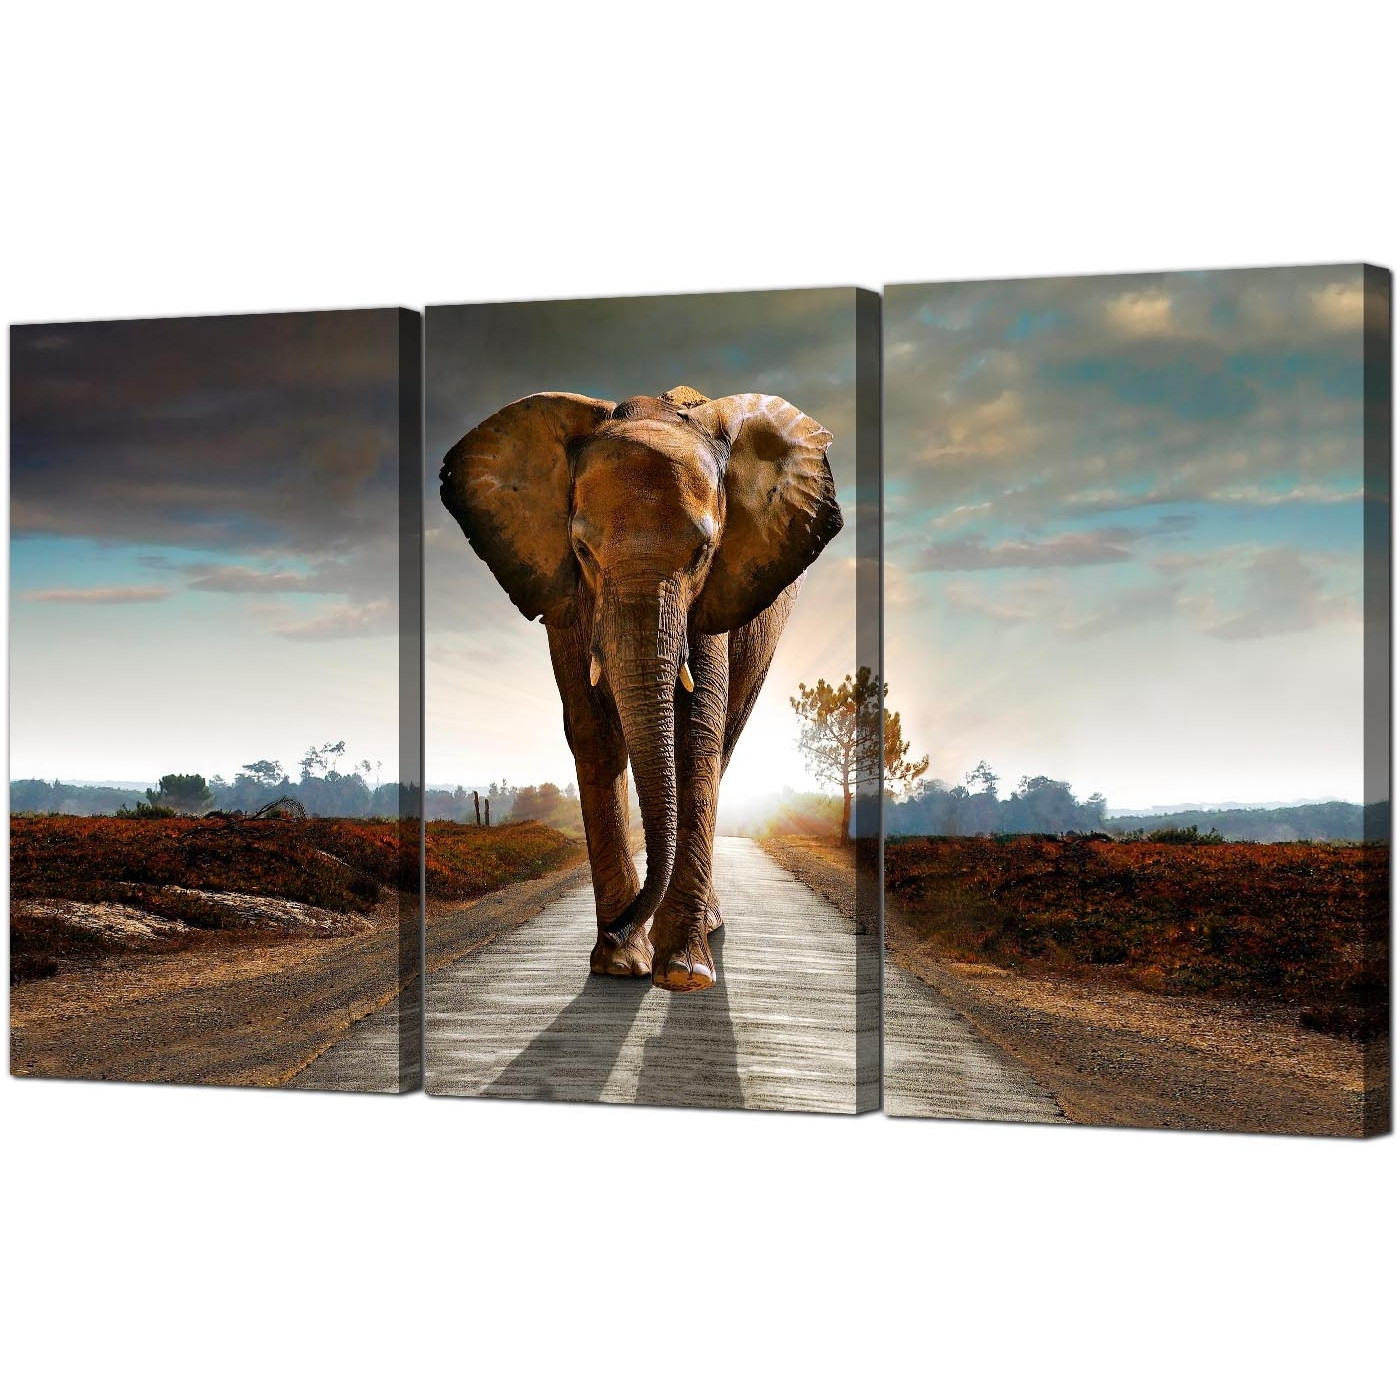 Popular Large African Elephant Canvas Prints 3 Part For Your Hallway Throughout Animal Canvas Wall Art (View 11 of 15)